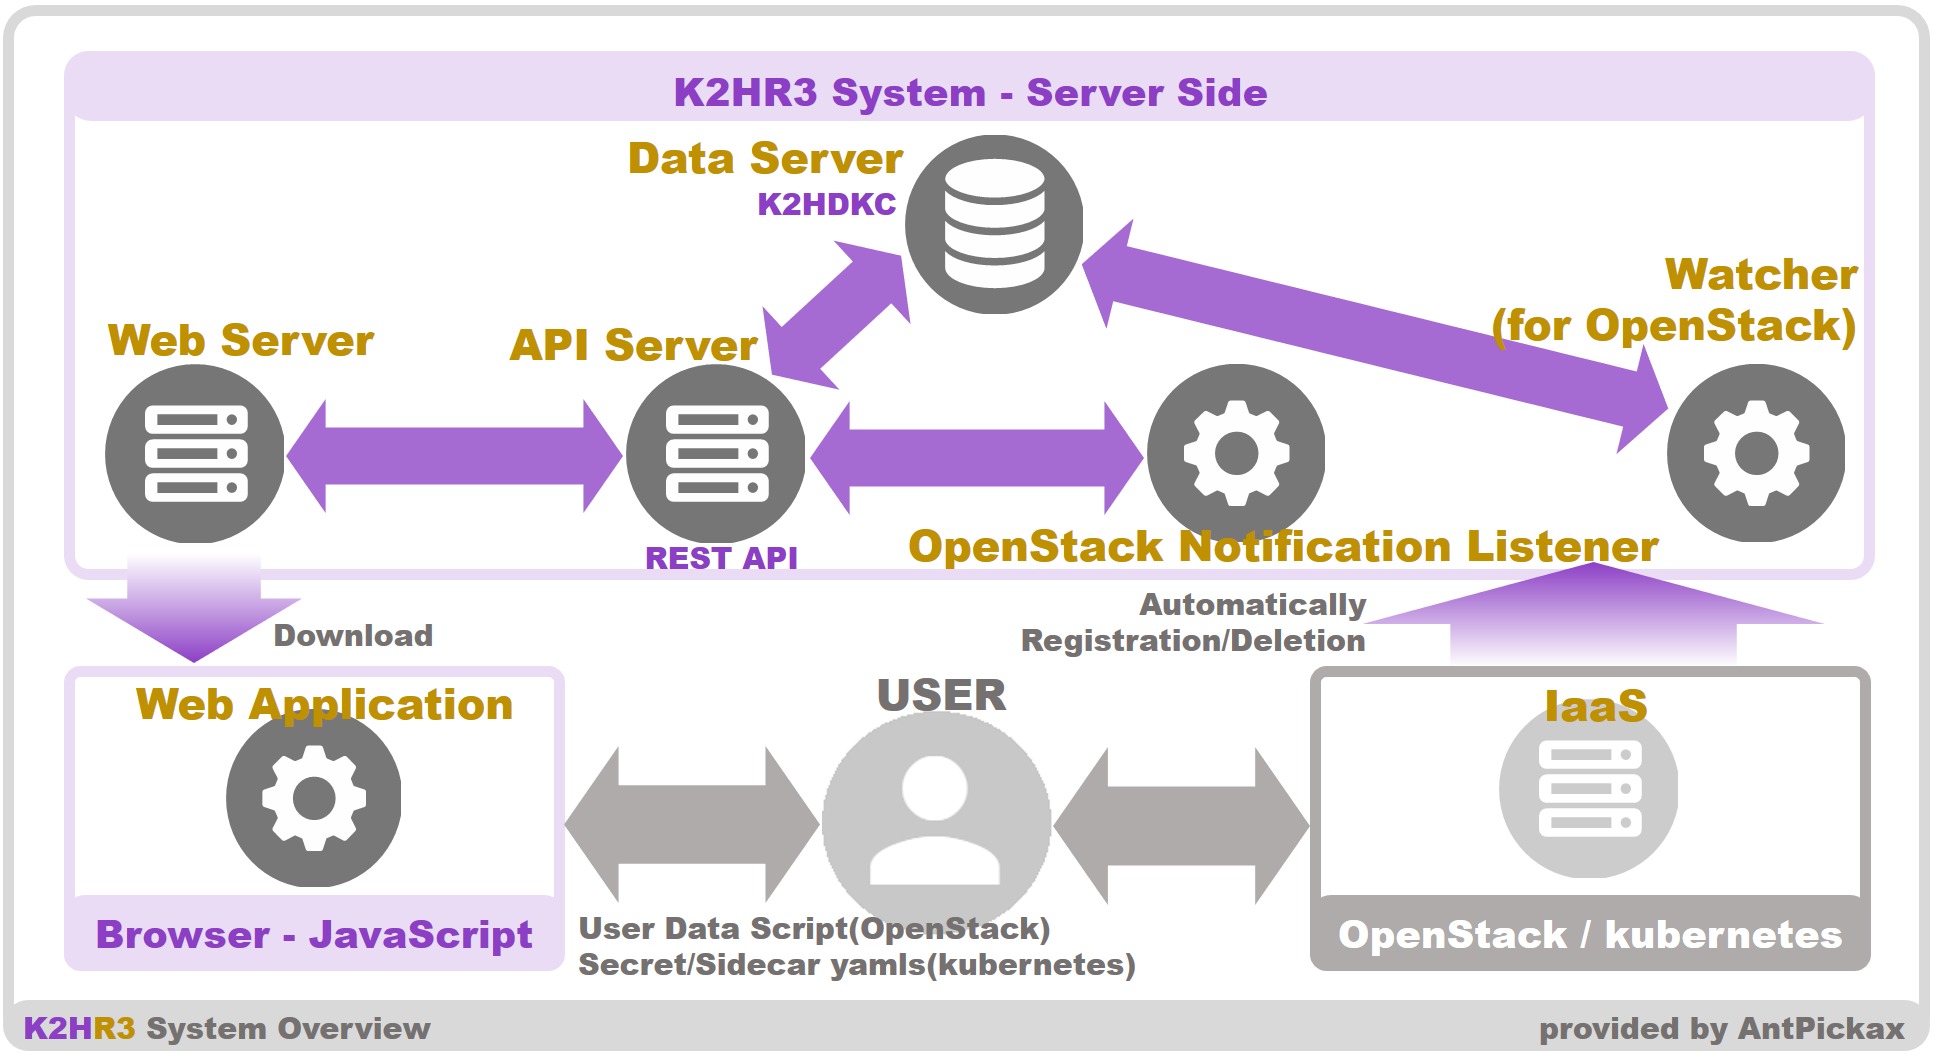 K2HR3 system overview